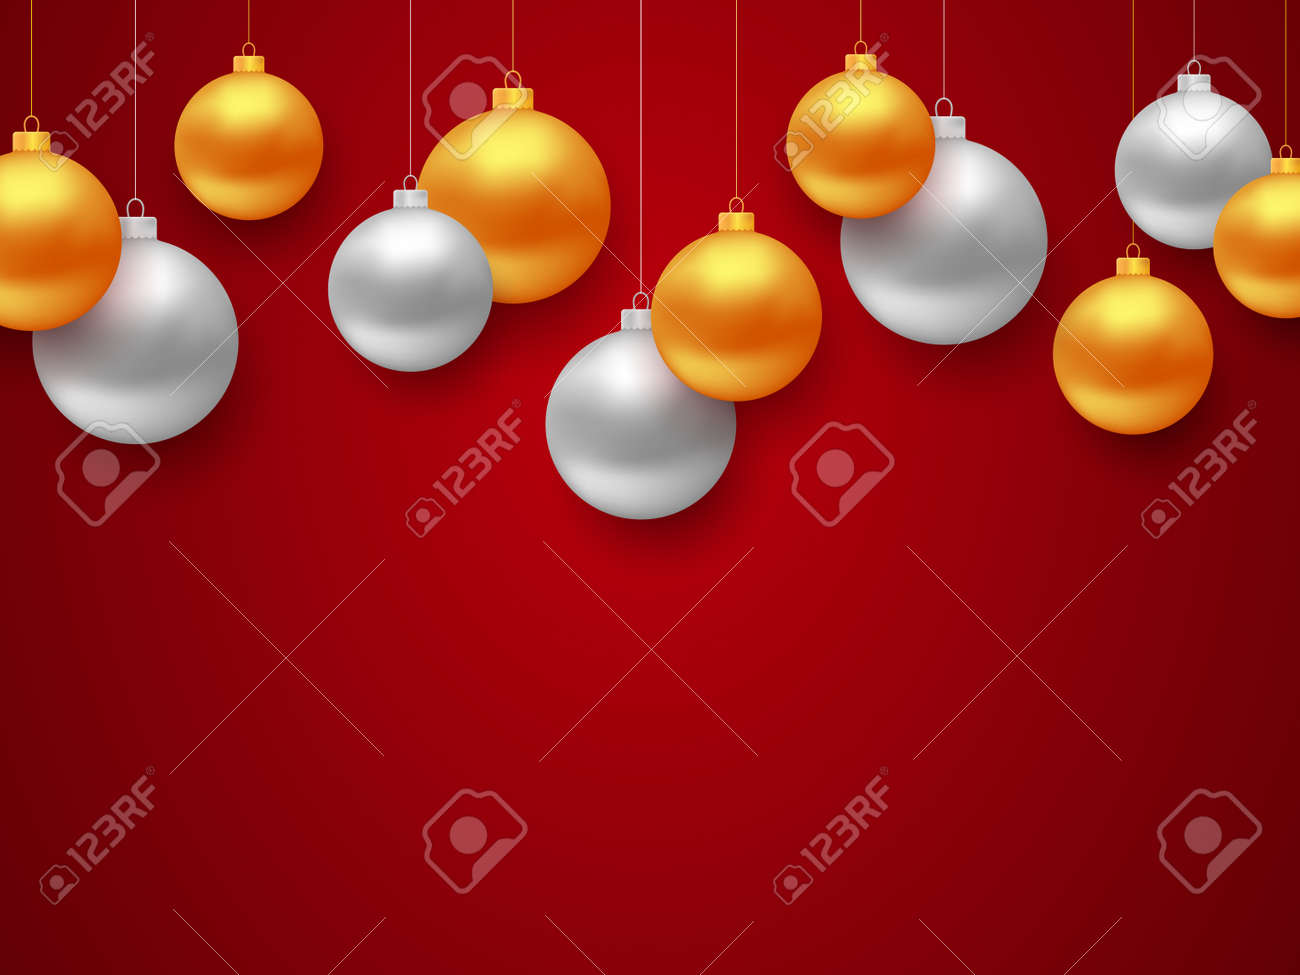 illustration new year 2018 banner with border of gold and silver color christmas balls and place for text on red background vector illustration